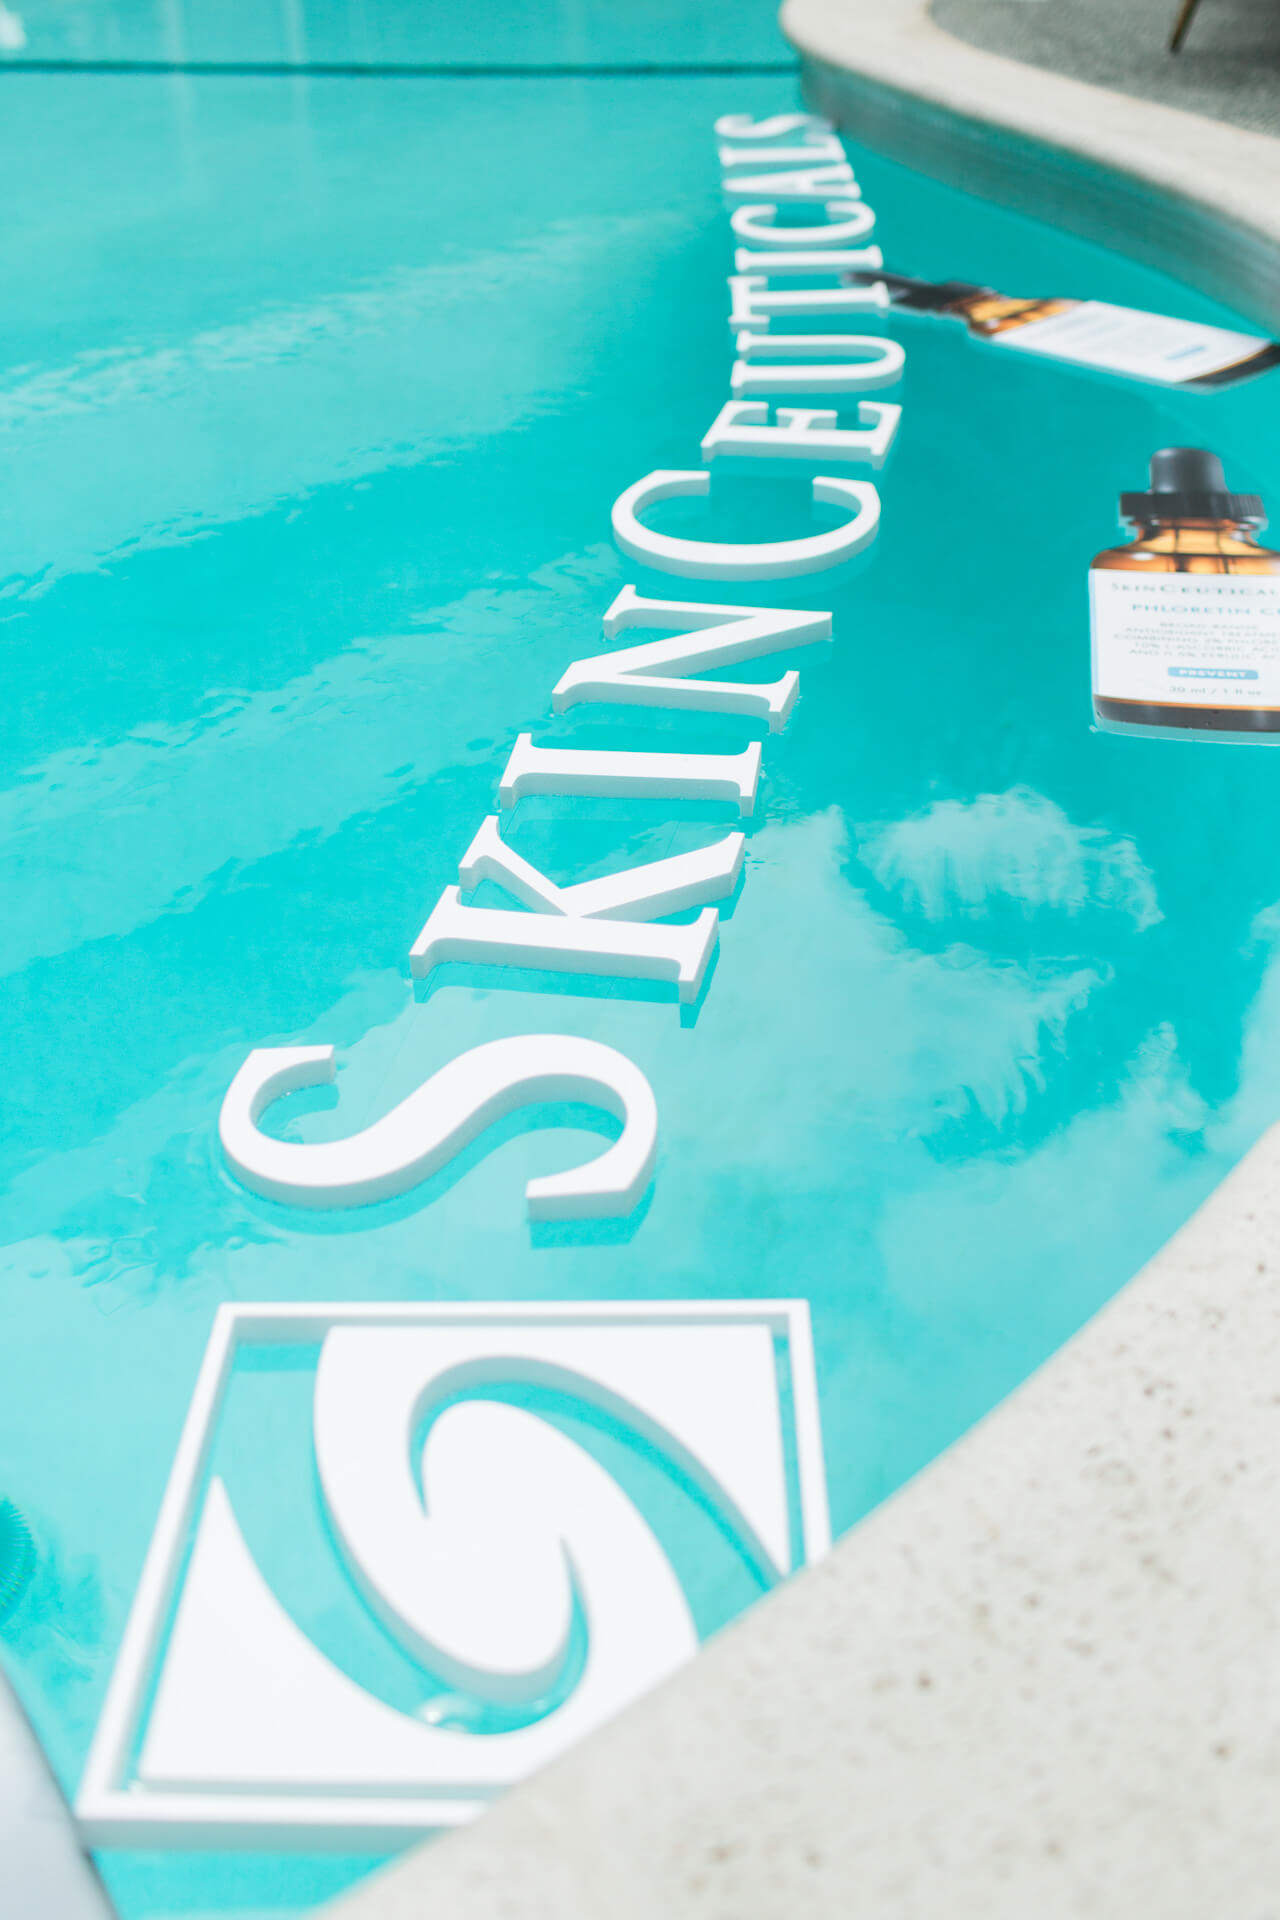 Skinceuticals event in Los Angeles about environmental aging